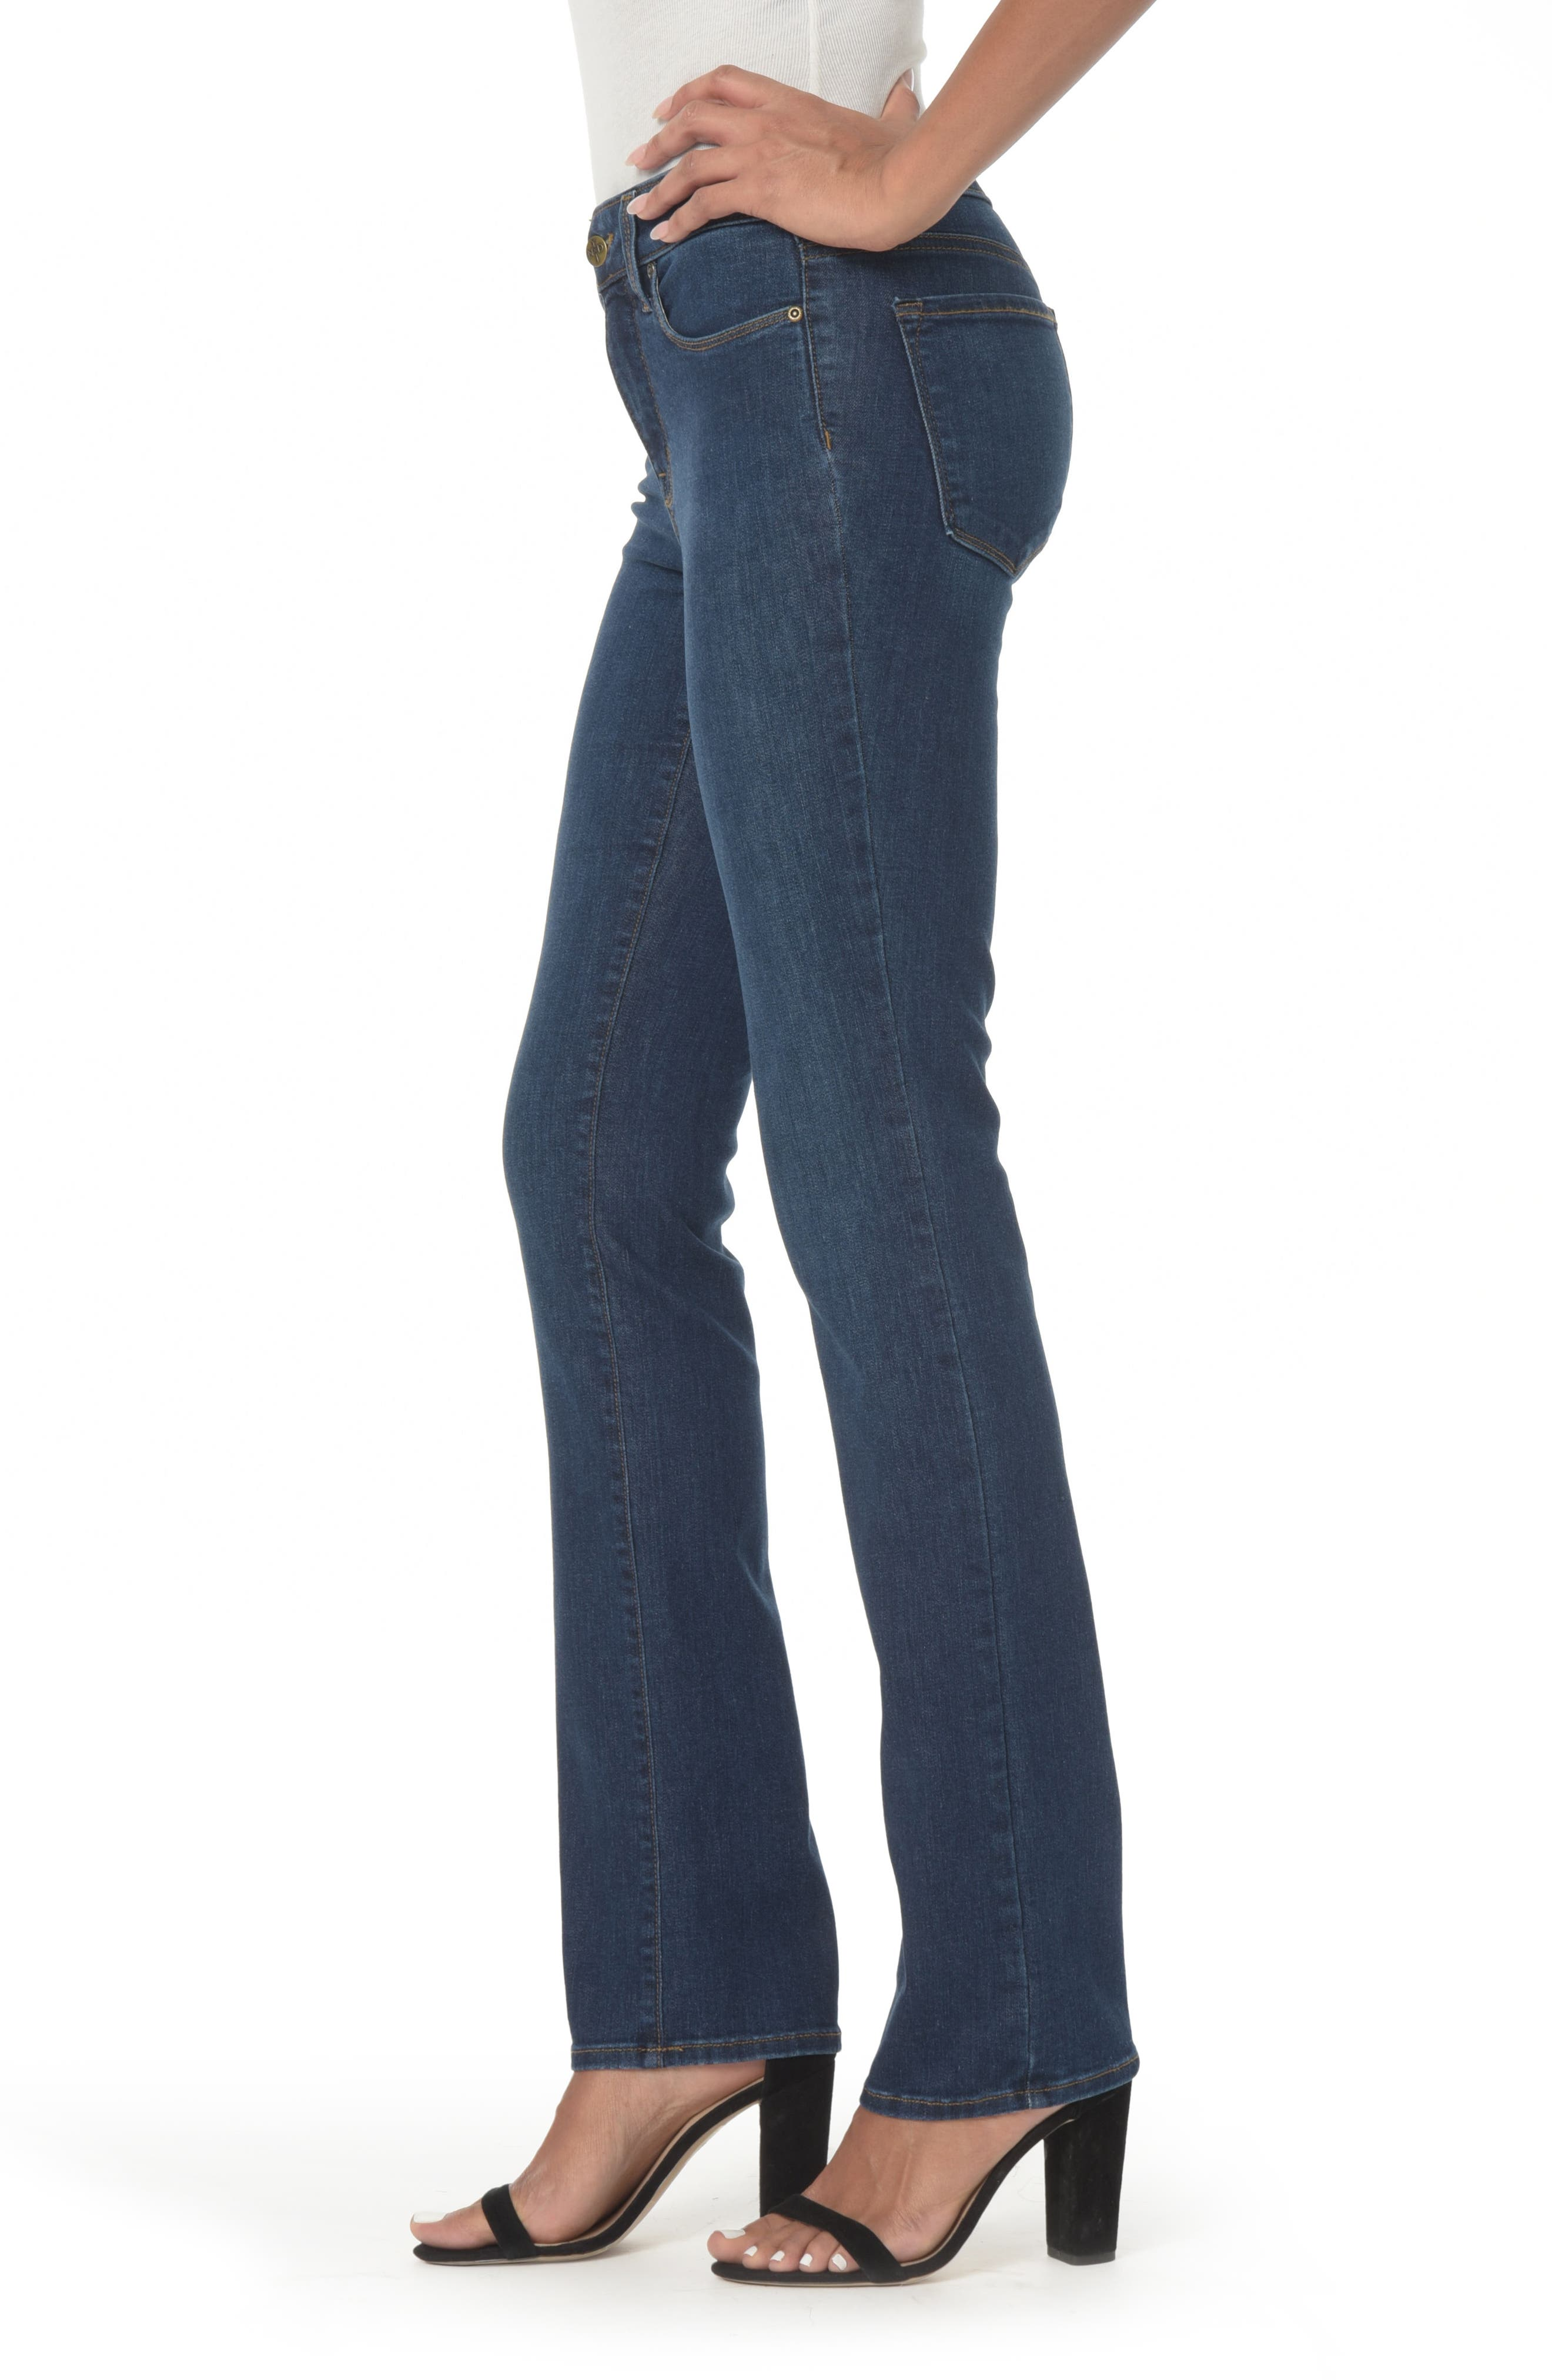 Marilyn Stretch Straight Leg Jeans,                             Alternate thumbnail 3, color,                             Cooper